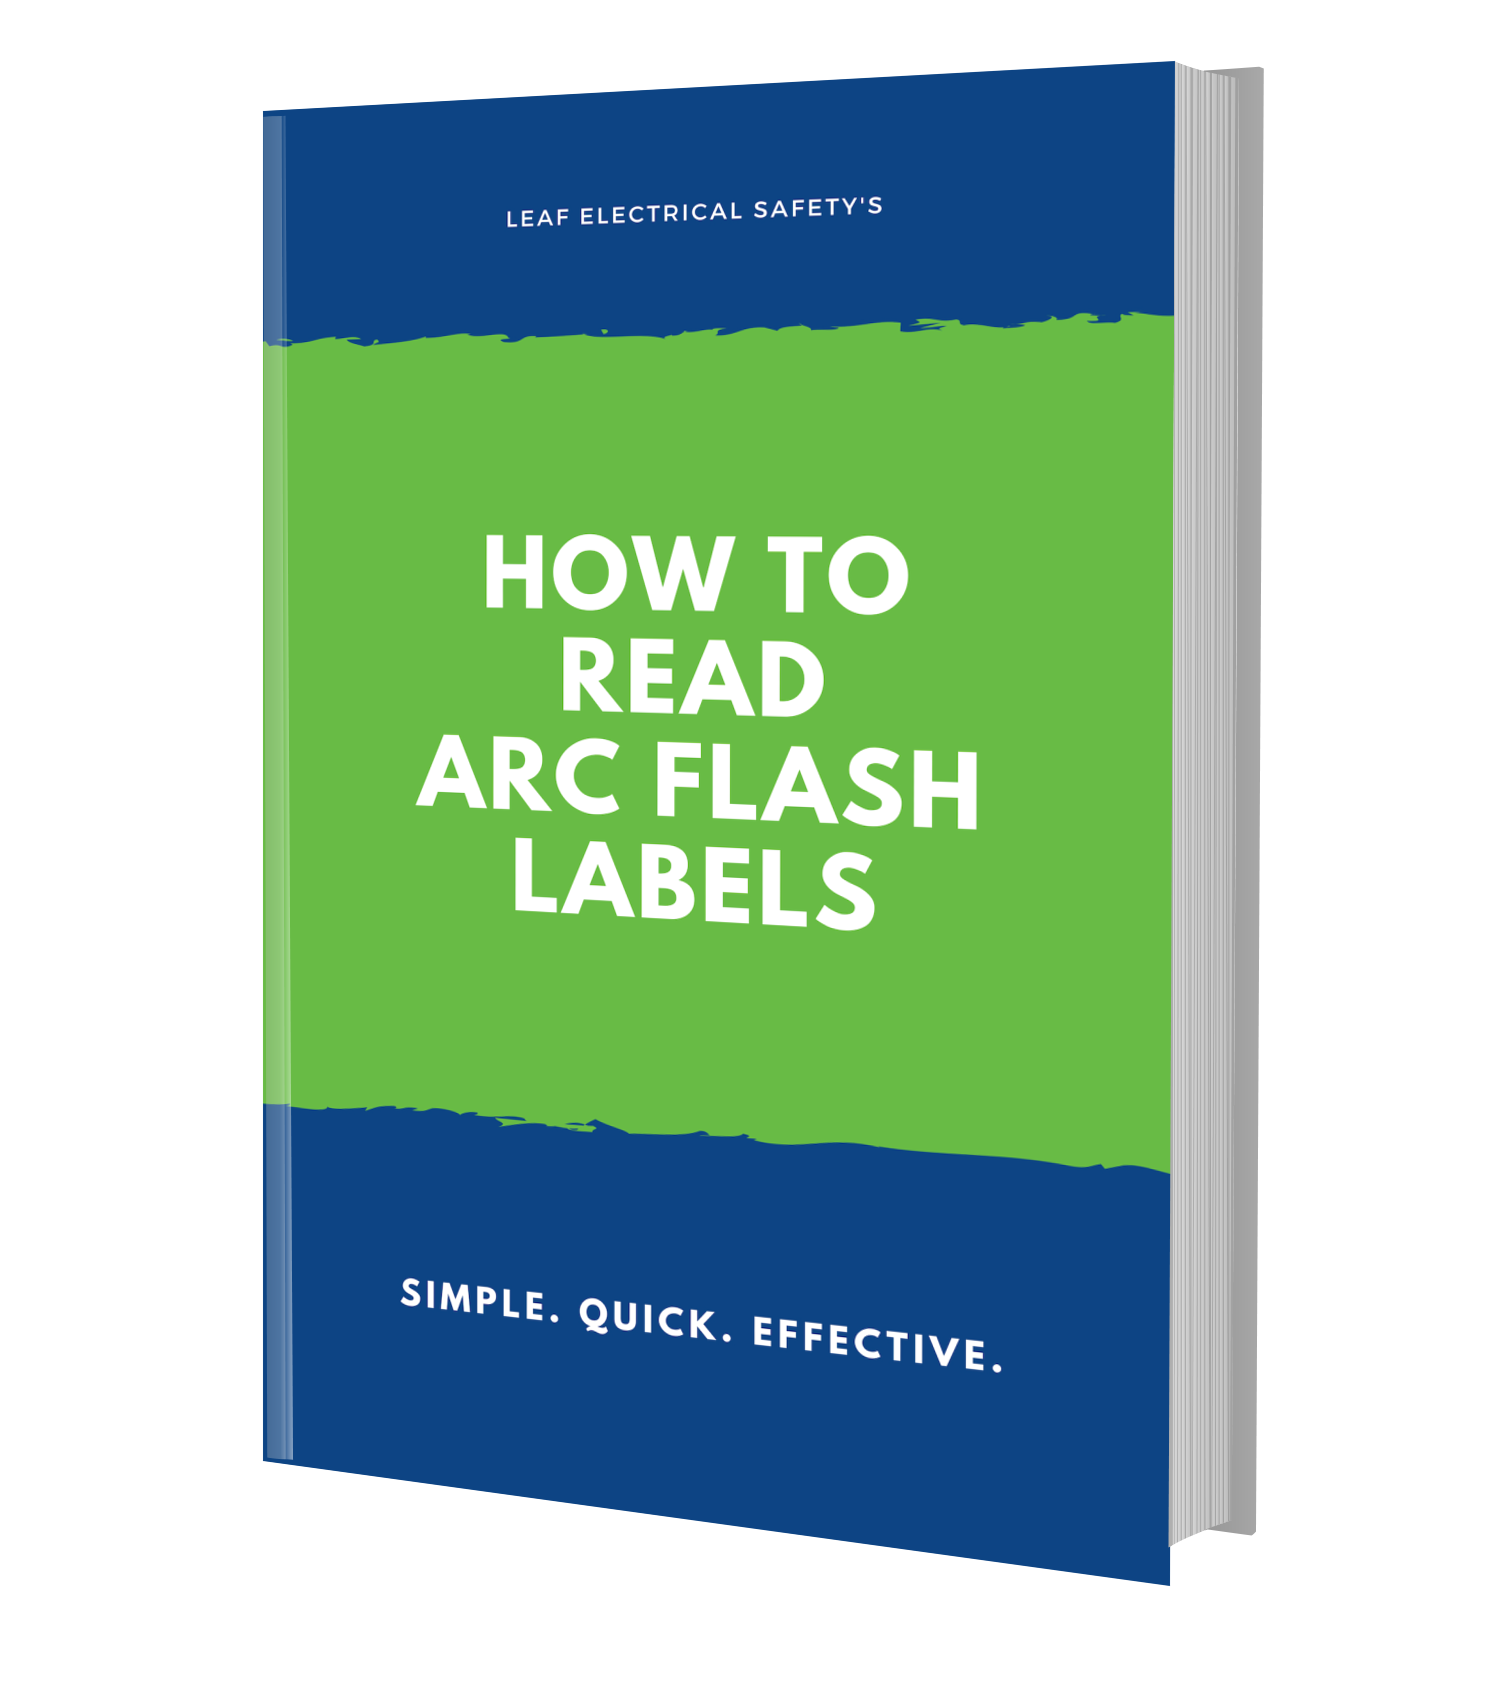 arc-flash-labels-book-cover.png